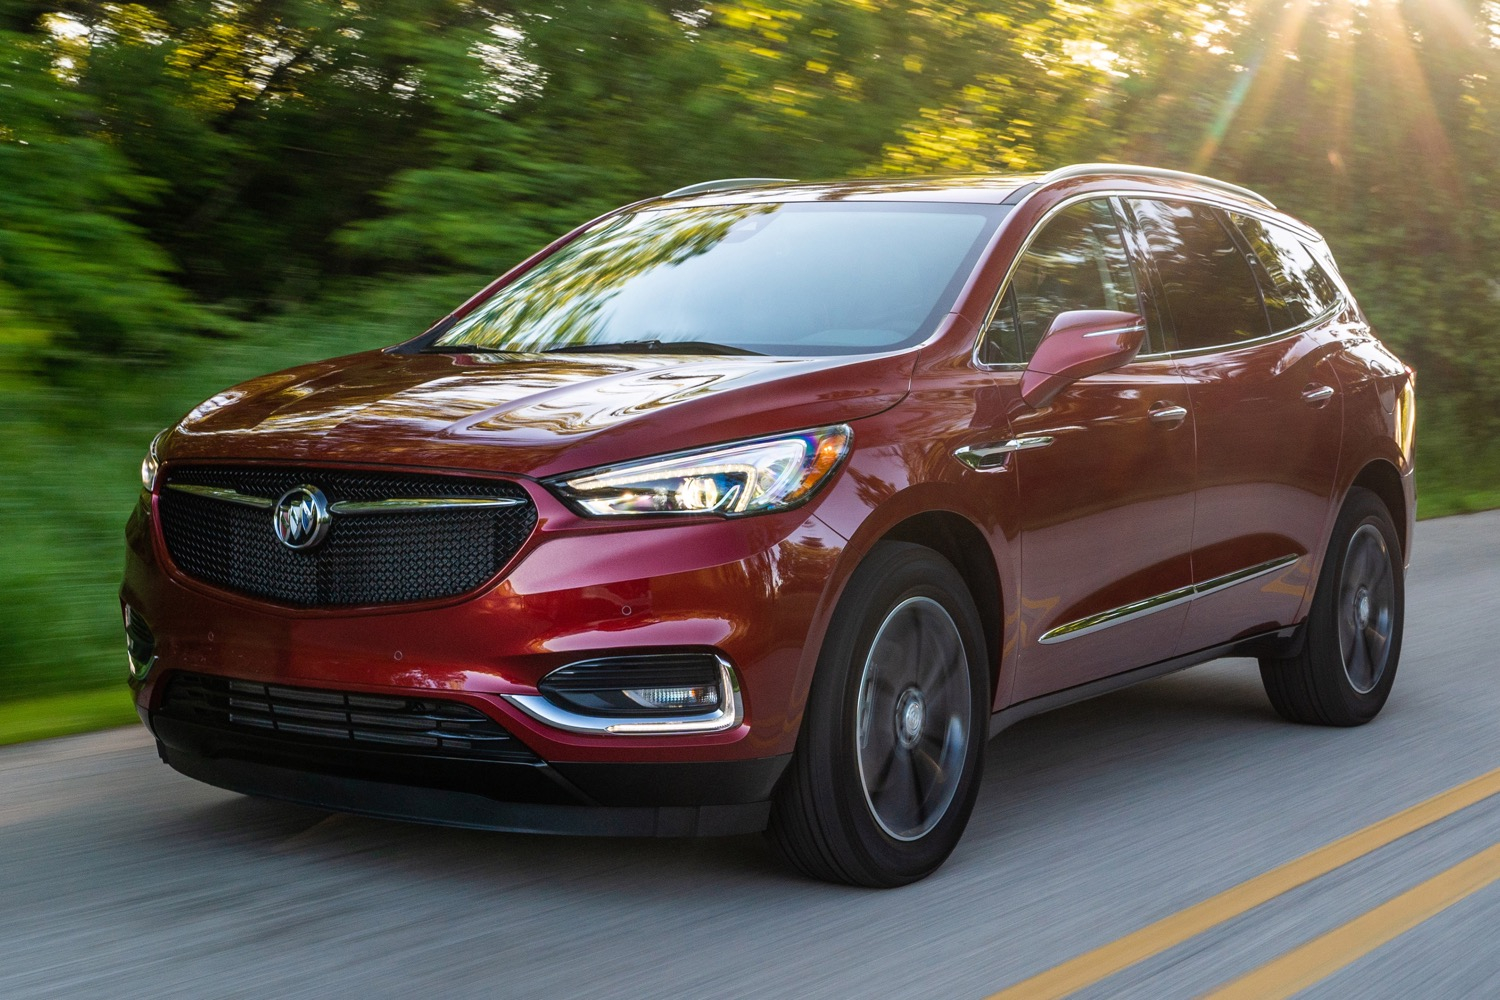 Gm C1 Platform: A Massive Exercise In Automotive Scale | Gm 2022 Buick Envision Weight, Wheelbase, 0-60